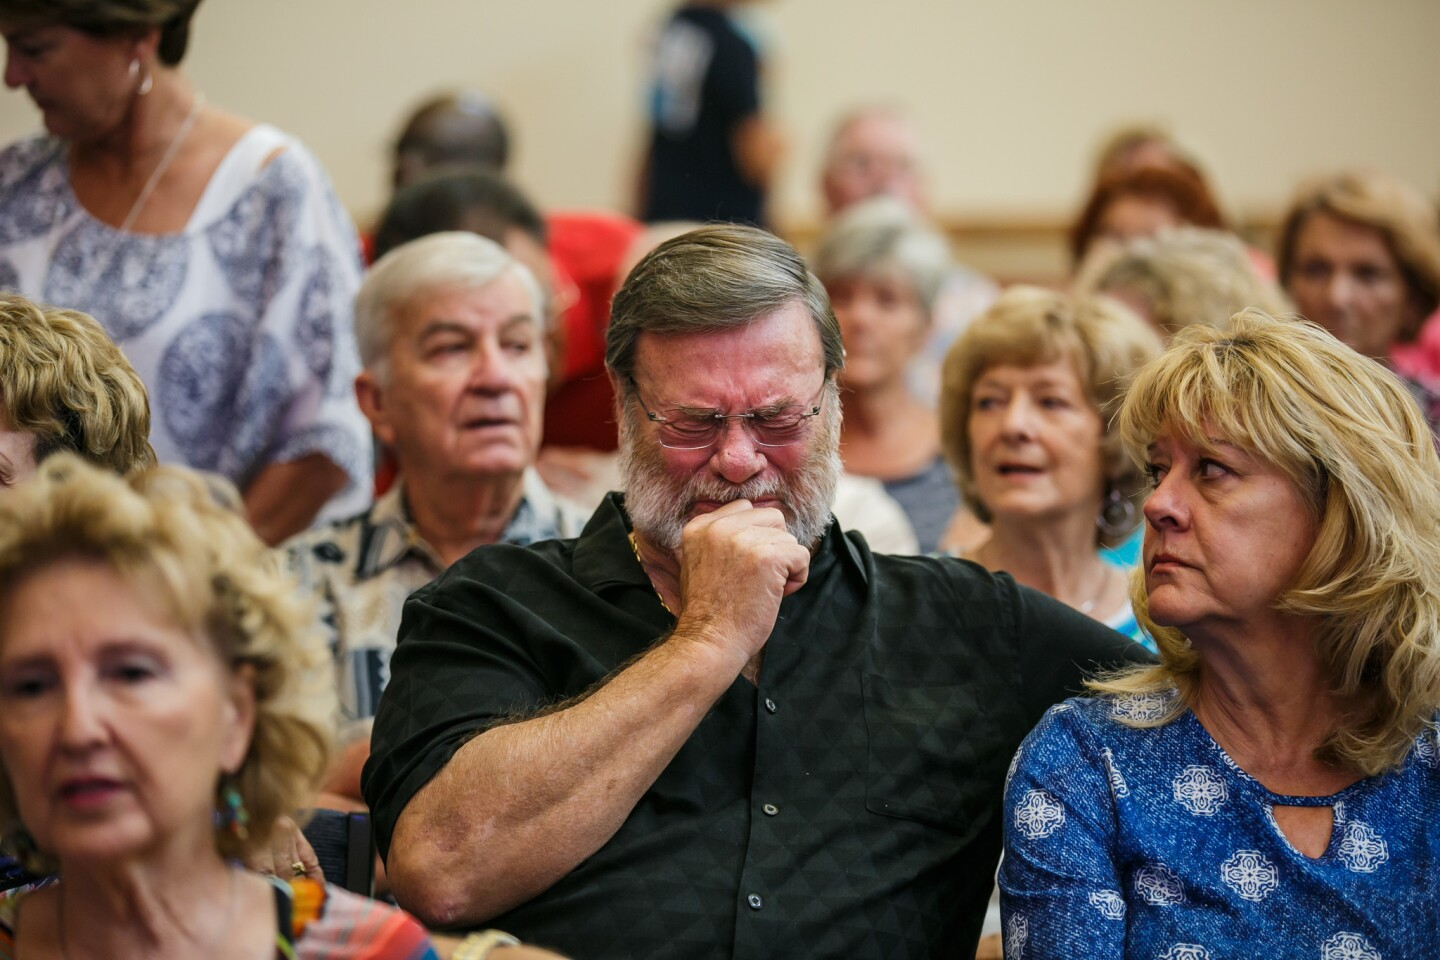 Wayne Christopher, center, weeps as his wife, Helen Christopher, looks on during the first Sunday service since Tropical Storm Harvey caused widespread flooding and damaged the First United Methodist Church.